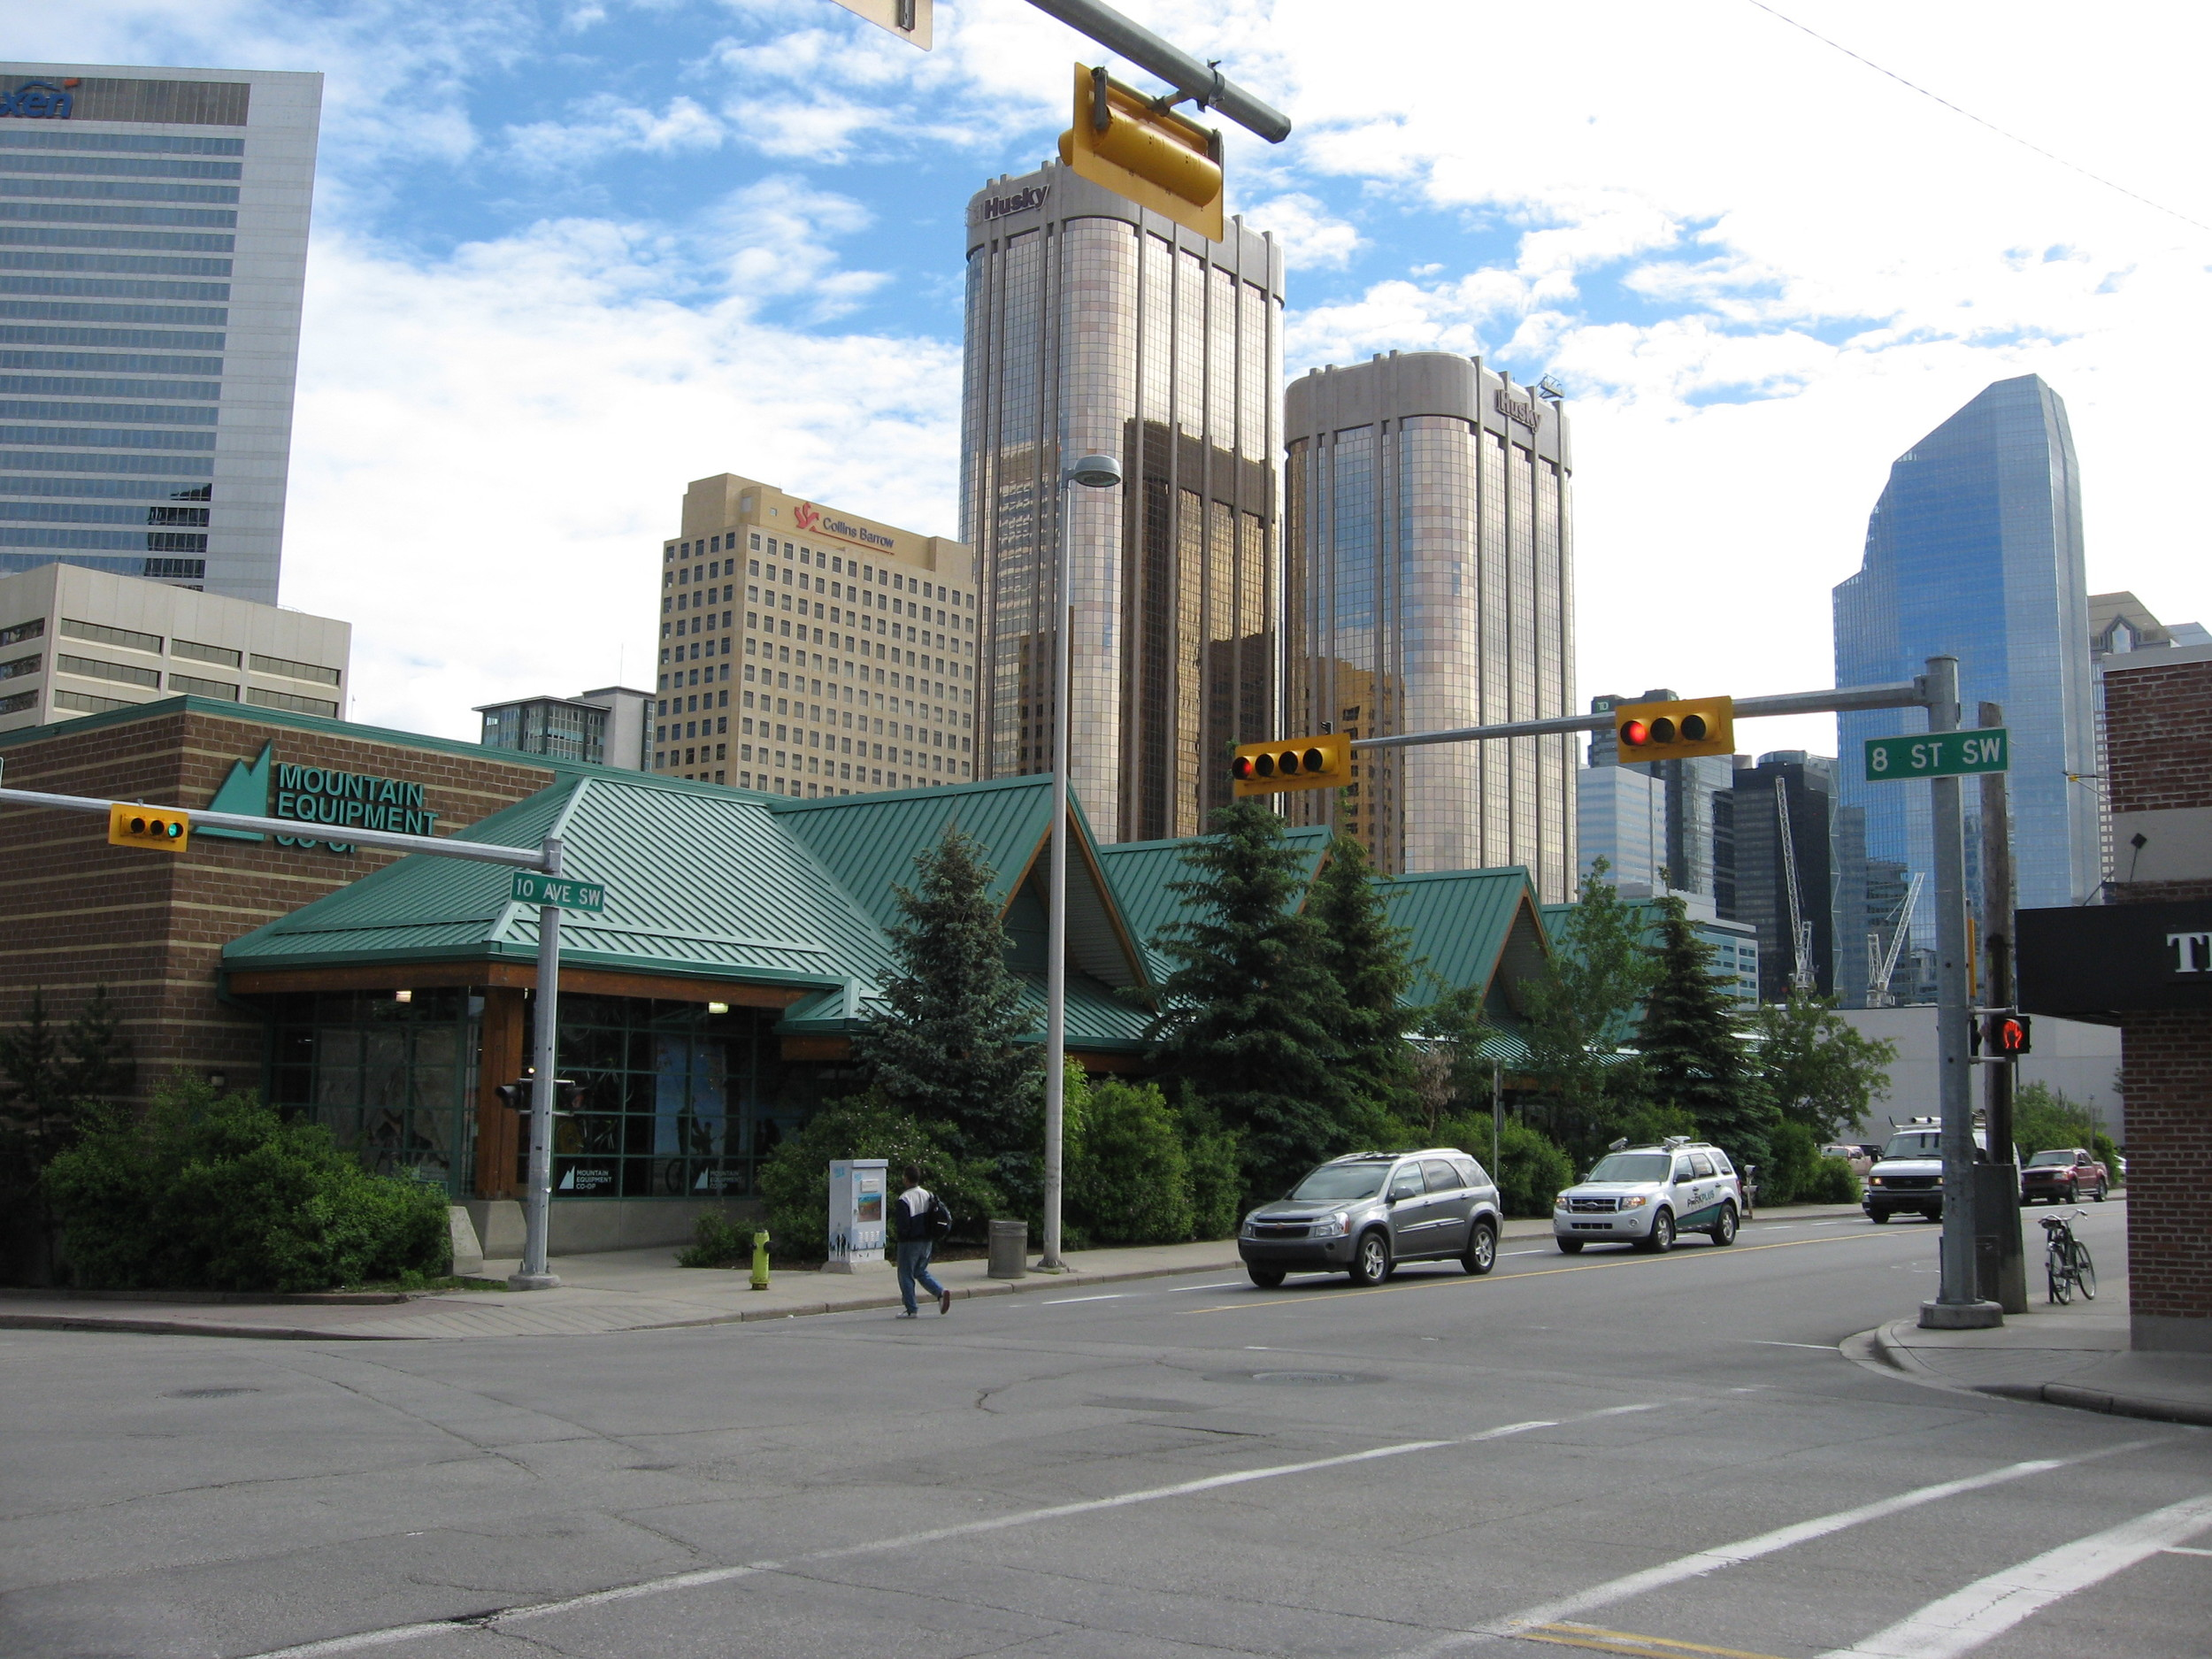 Just to the north of the Beltline is Calgary's downtown core with over 40 million square feet of office space. It has one of the highest concentrations of corporate headquarters in North America. It is where the GABEsters work. The building in the foreground is the MEC (Mountain Equipment Co-op) which anhcors the Gear District as there are several sporting goods and bike shops in the area.